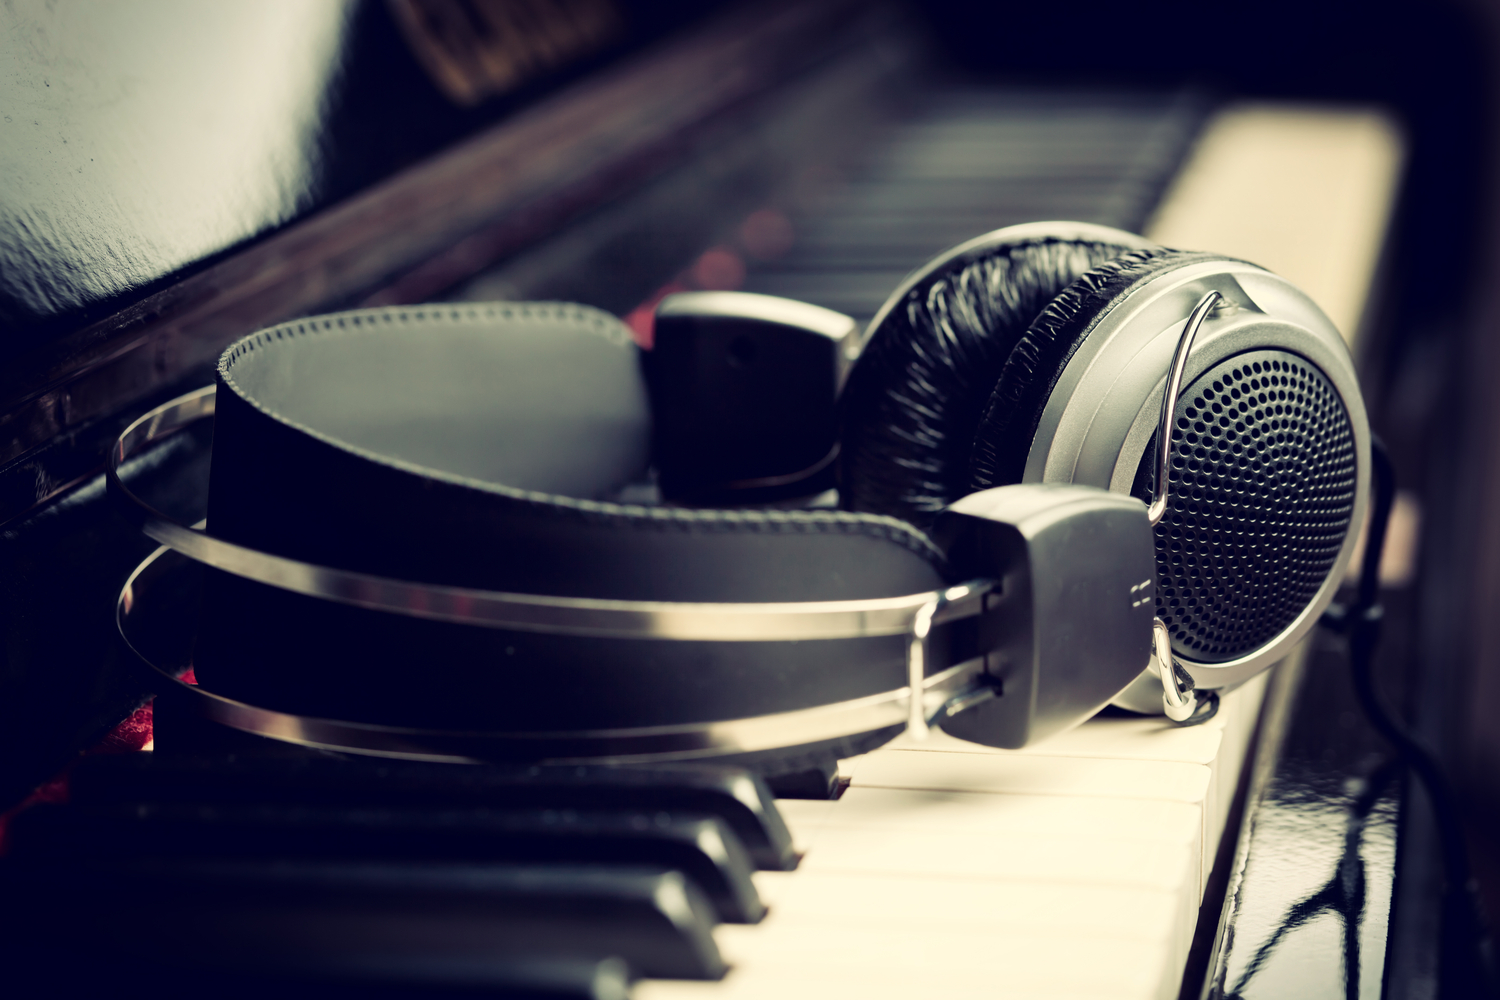 Decentralized Music Streaming Service Audius Now Has 5M Users